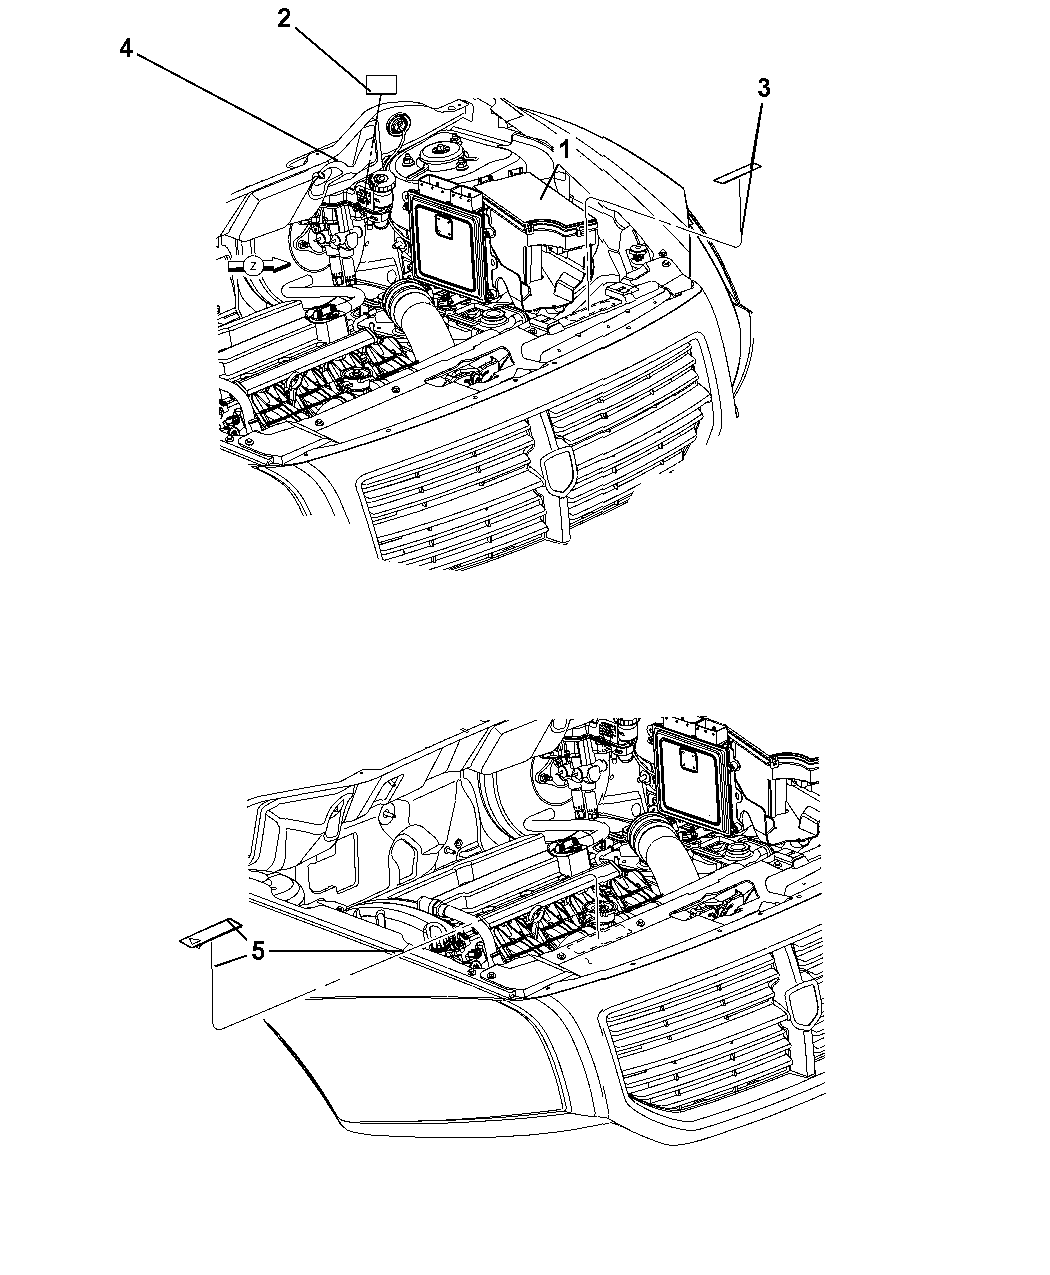 Dodge Engine Bay Diagram on engine belt diagrams, acura engine diagrams, dodge firing order, mitsubishi engine diagrams, bmw engine diagrams, studebaker engine diagrams, toyota engine diagrams, engine breakdown diagrams, gm engine diagrams, dodge intrepid 2.7 timing marks, chevy engine diagrams, dodge starter diagram, kia engine diagrams, gmc engine diagrams, mopar engine diagrams, lamborghini engine diagrams, volvo engine diagrams, diesel engine diagrams, paccar engine diagrams, chrysler engine diagrams,